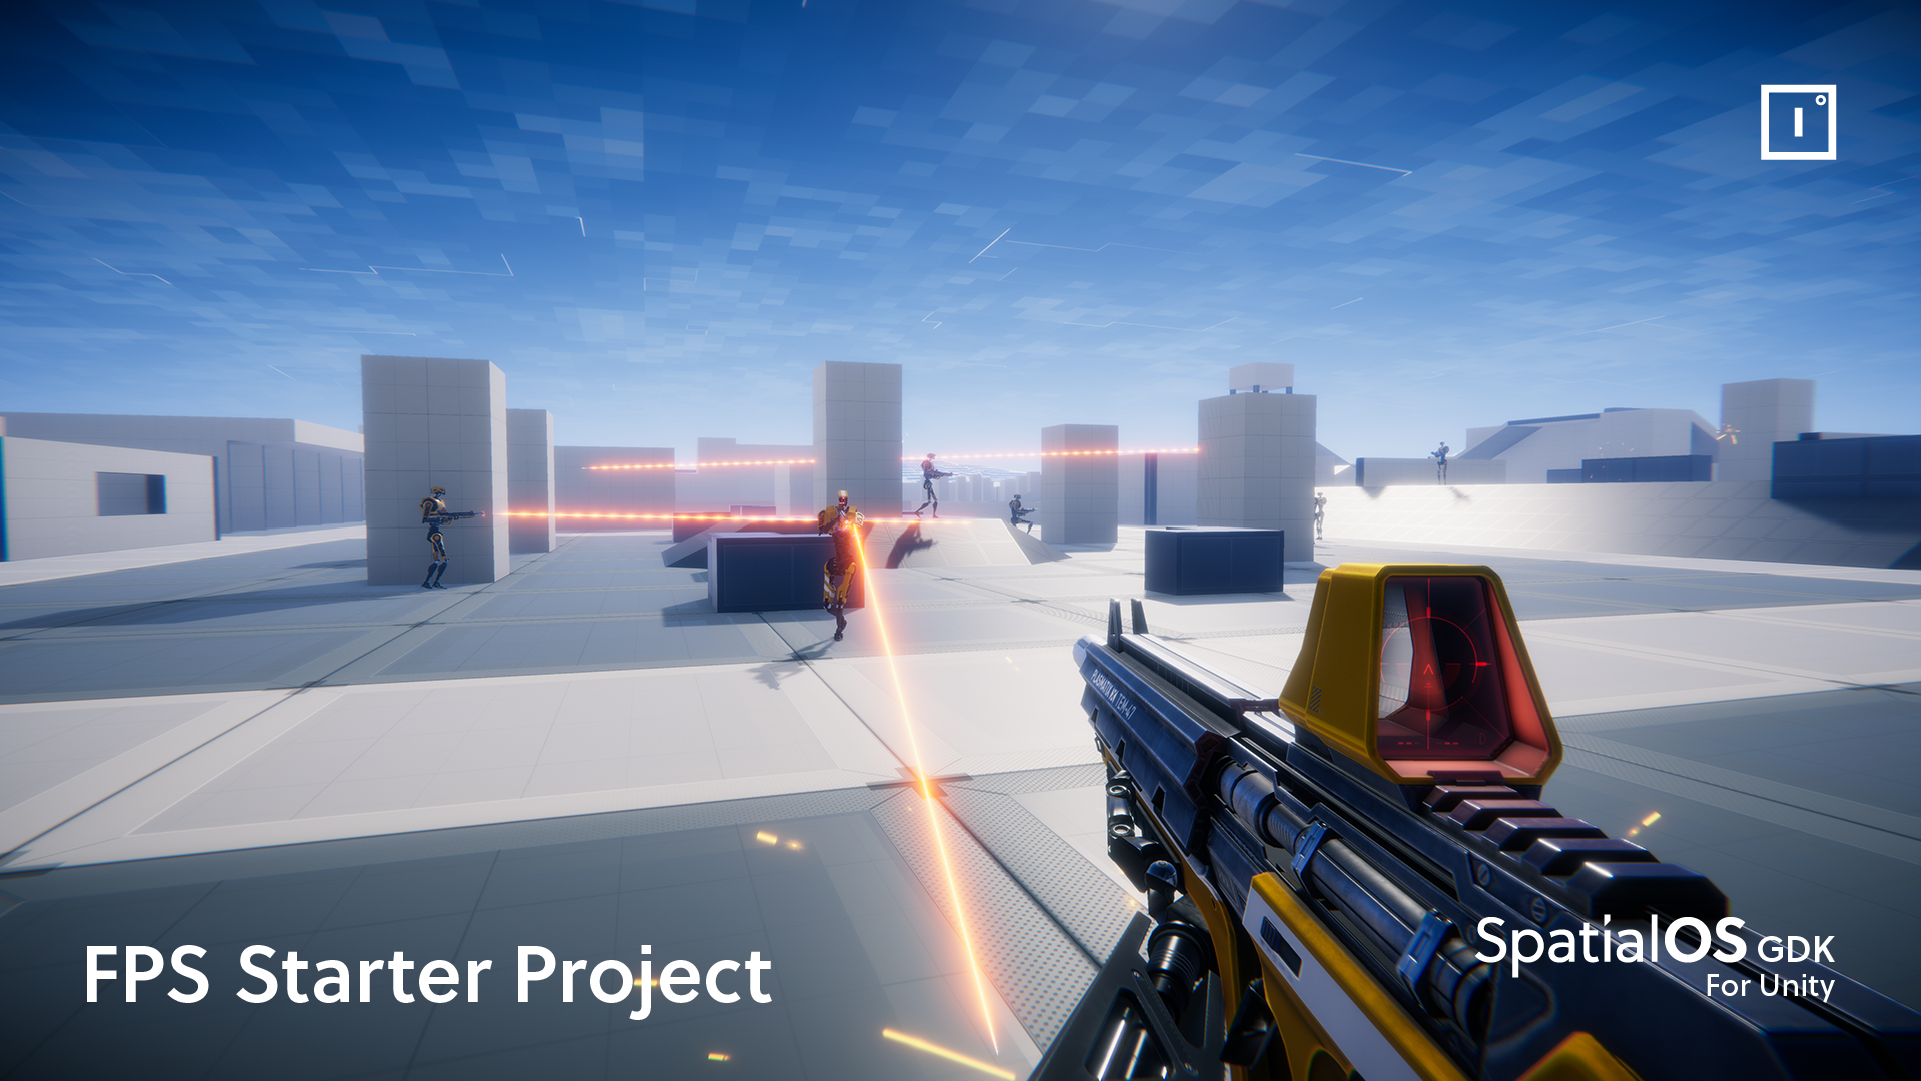 Instant action in the FPS Starter Project